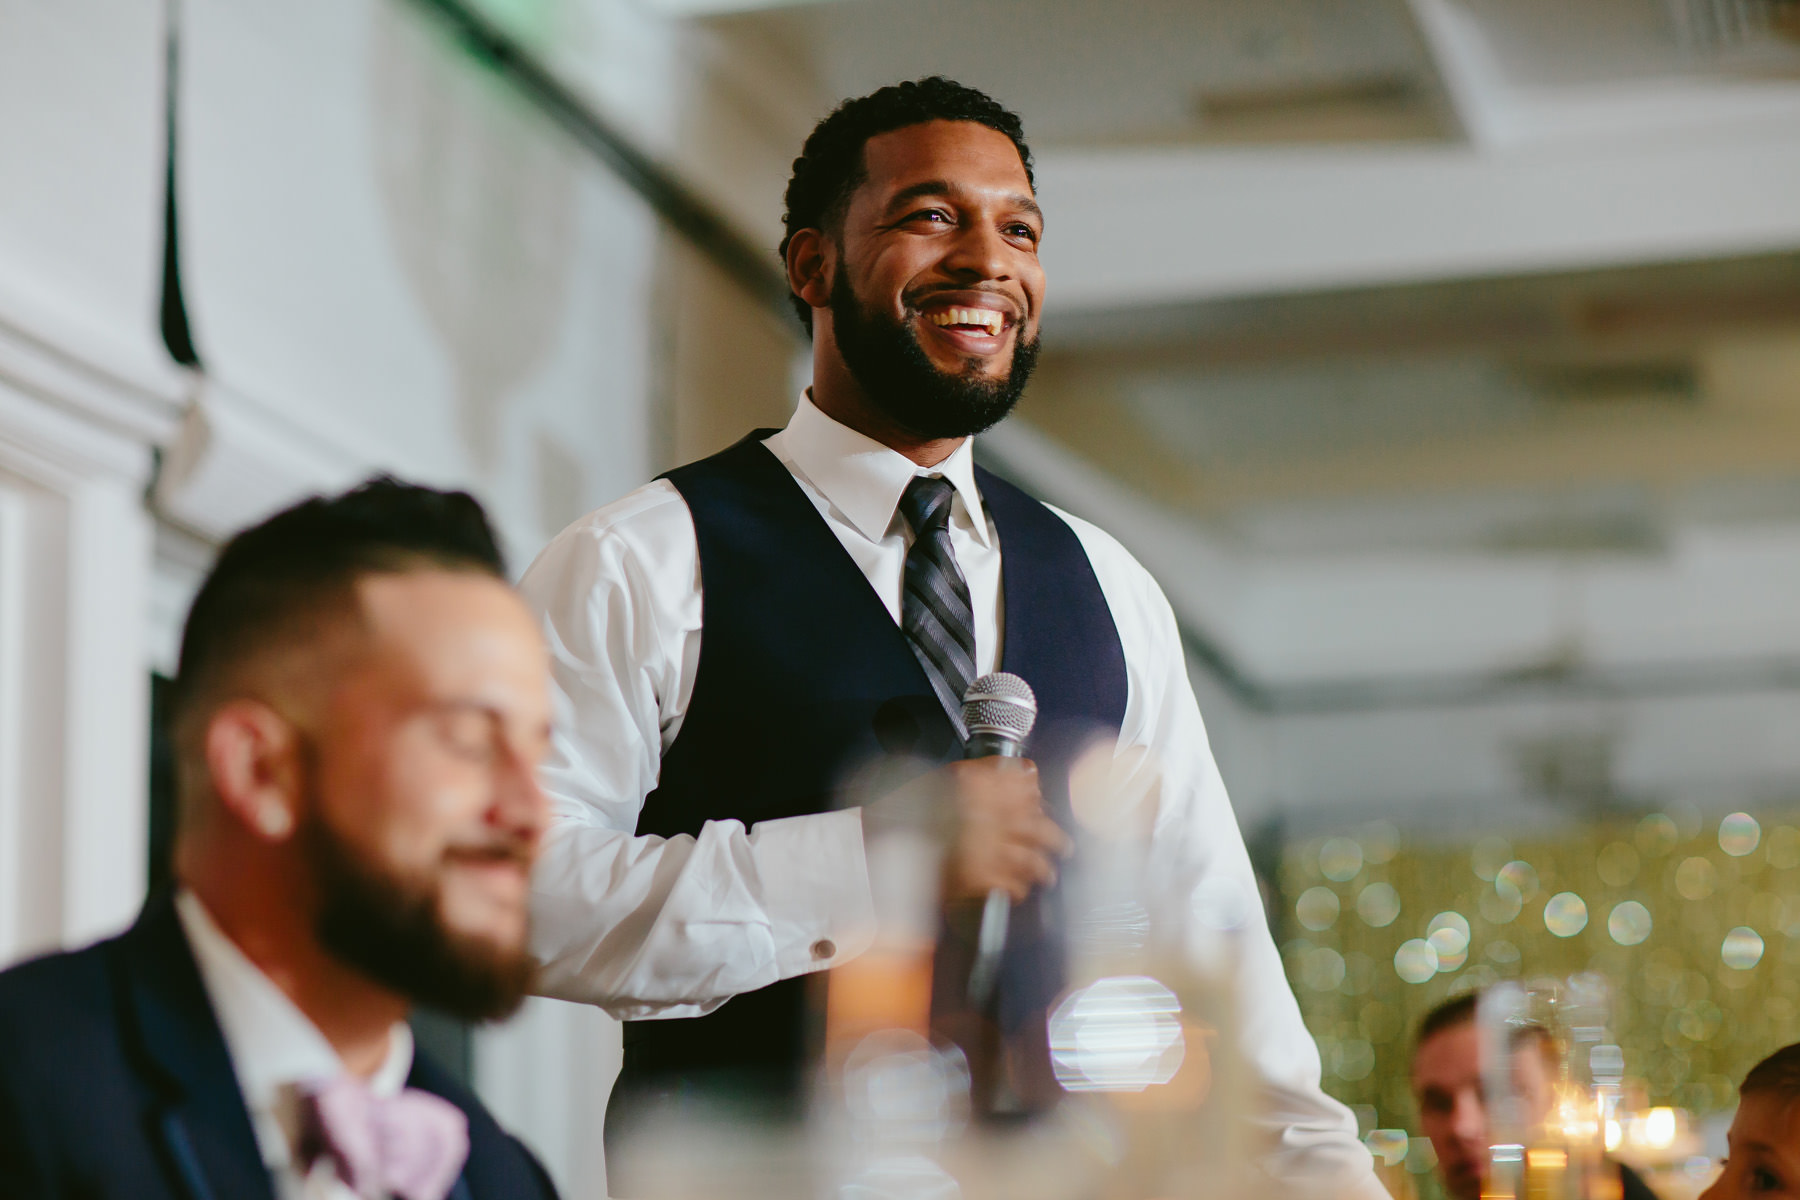 groomsman-speech-wedding-reception-tiny-house-photo.jpg